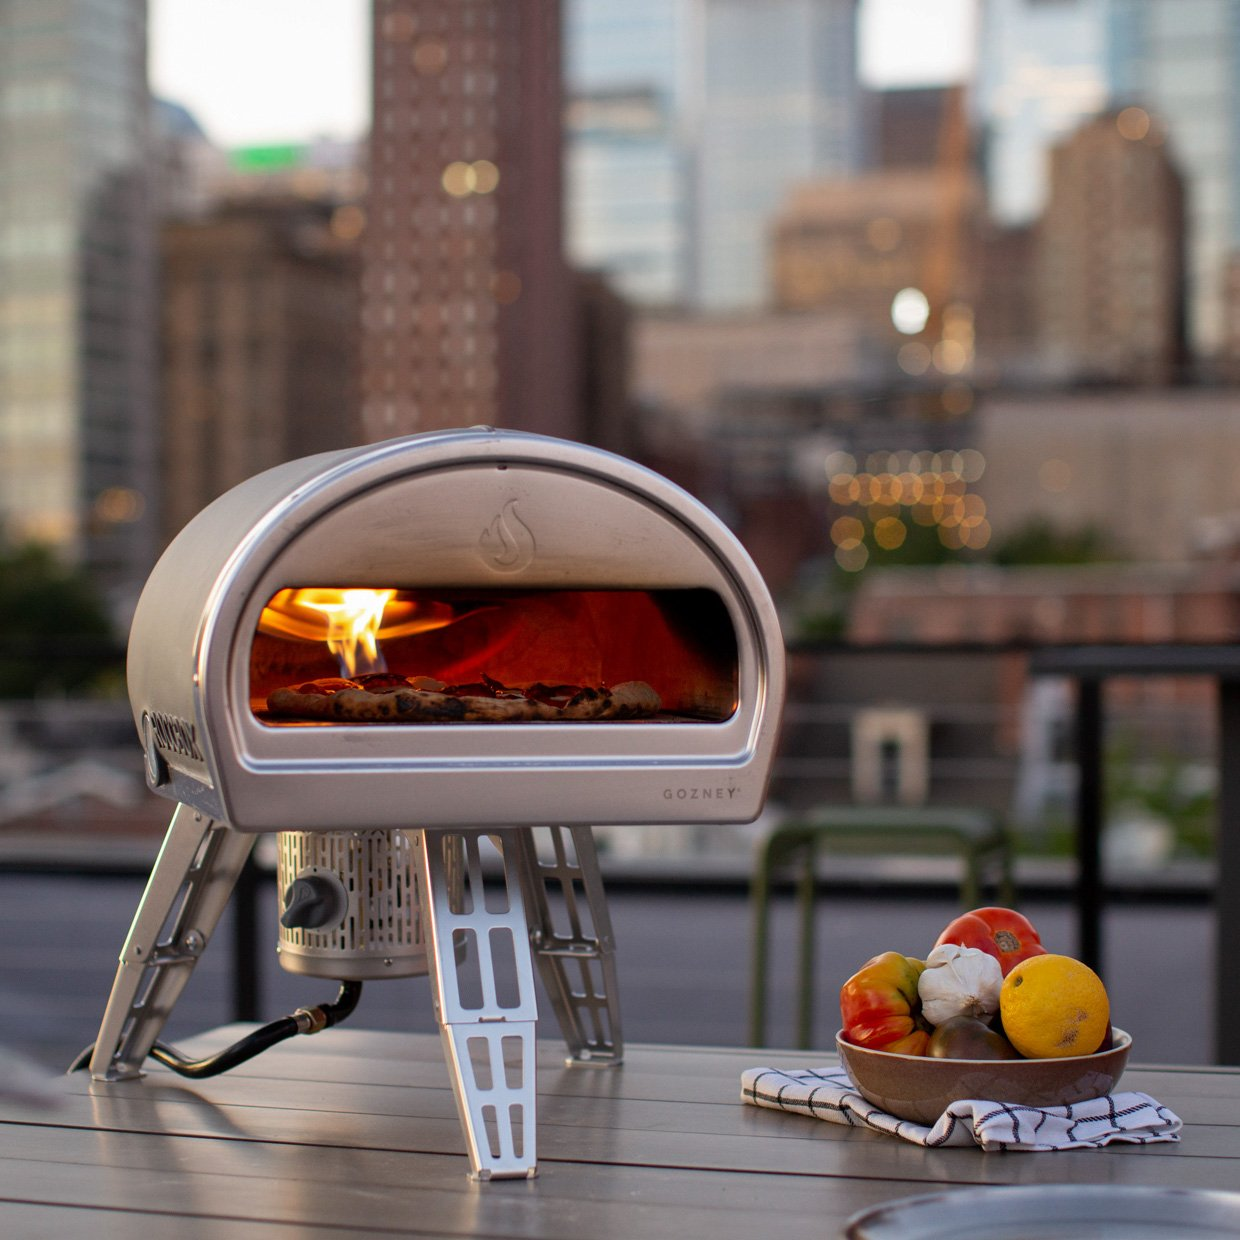 Pizza oven with New York skyline